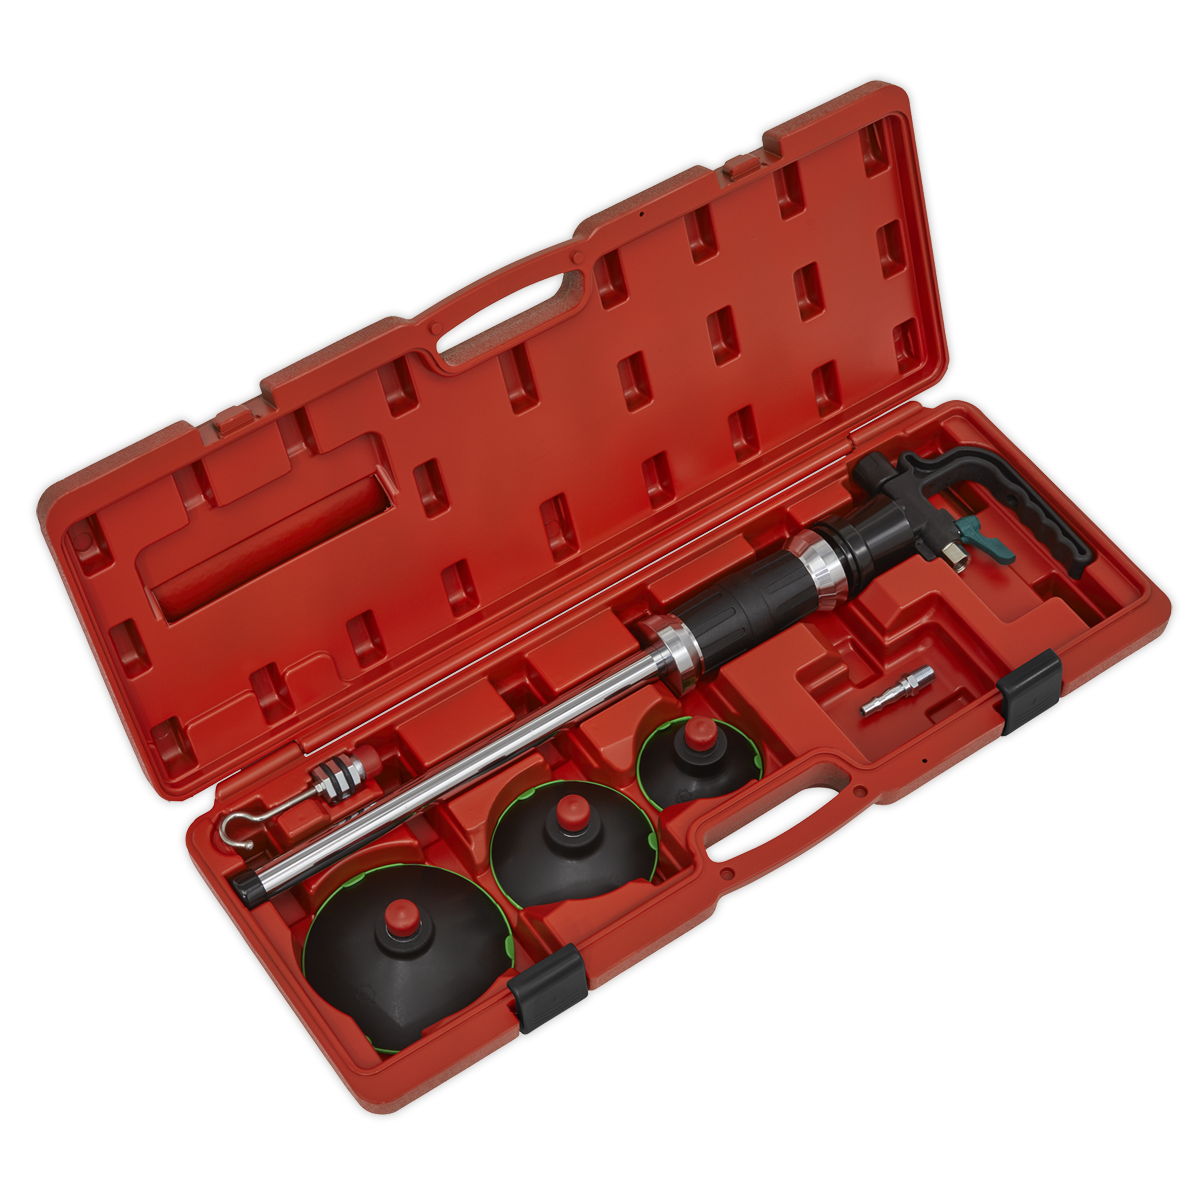 Air Suction Dent Puller   SEALEY RE101 by Sealey   New